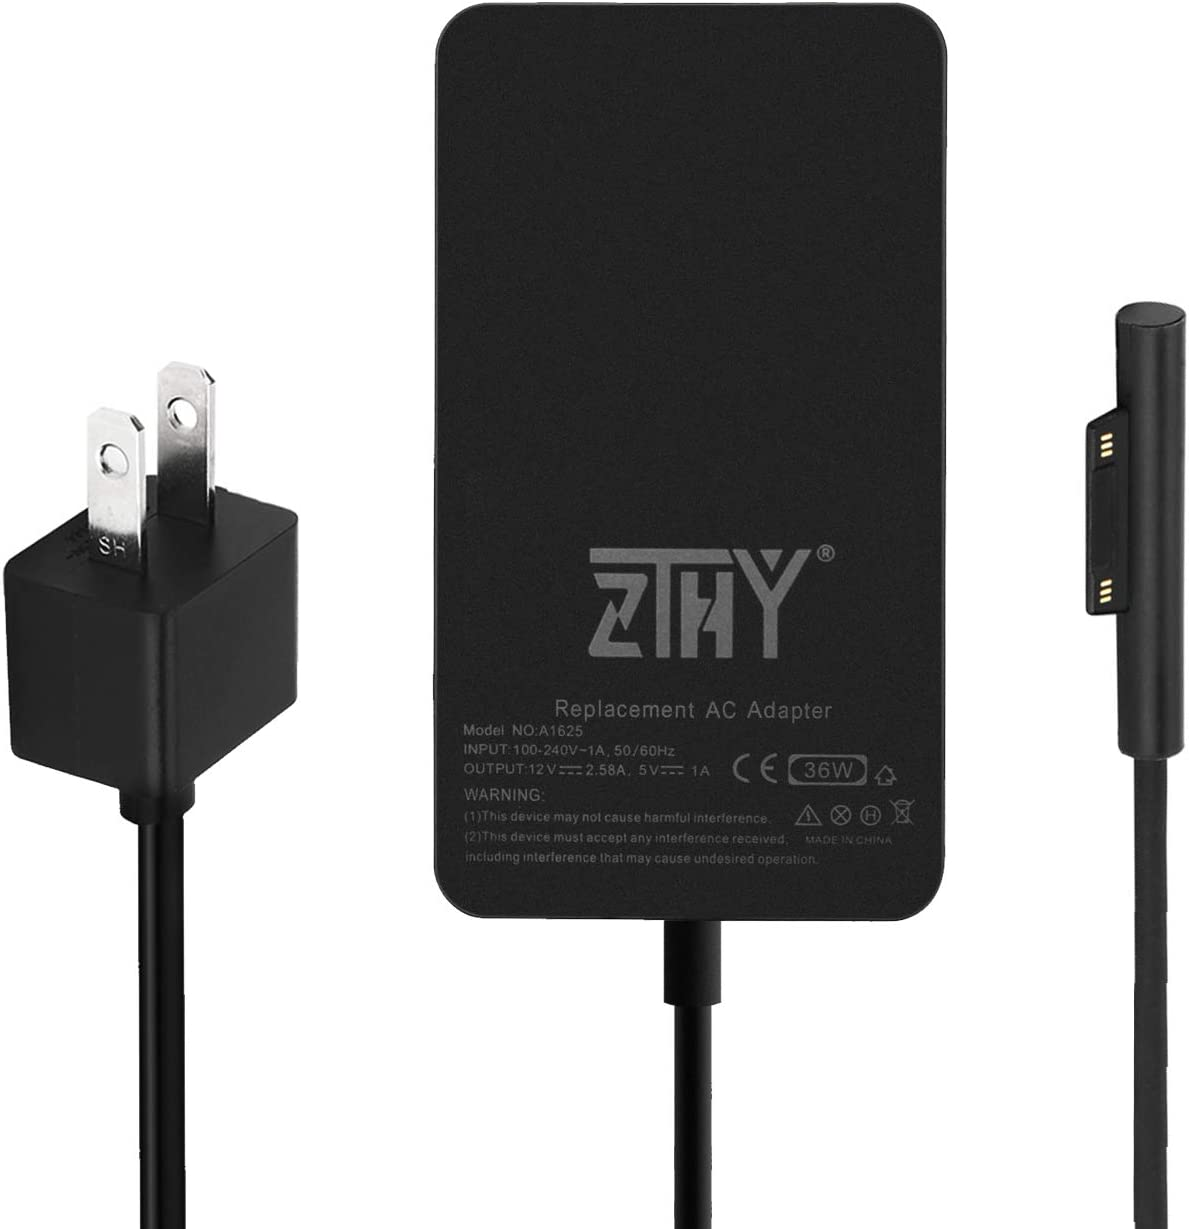 Surface Pro 5 Pro 4 Pro 3 Charger,ZTHY 36W 12V 2.58A Power Supply Adapter for Microsoft Surface Pro 3 Pro 4 i5 i7 Pro 5 Surface Go Tablet with 6Ft USB Power Cord Model 1625